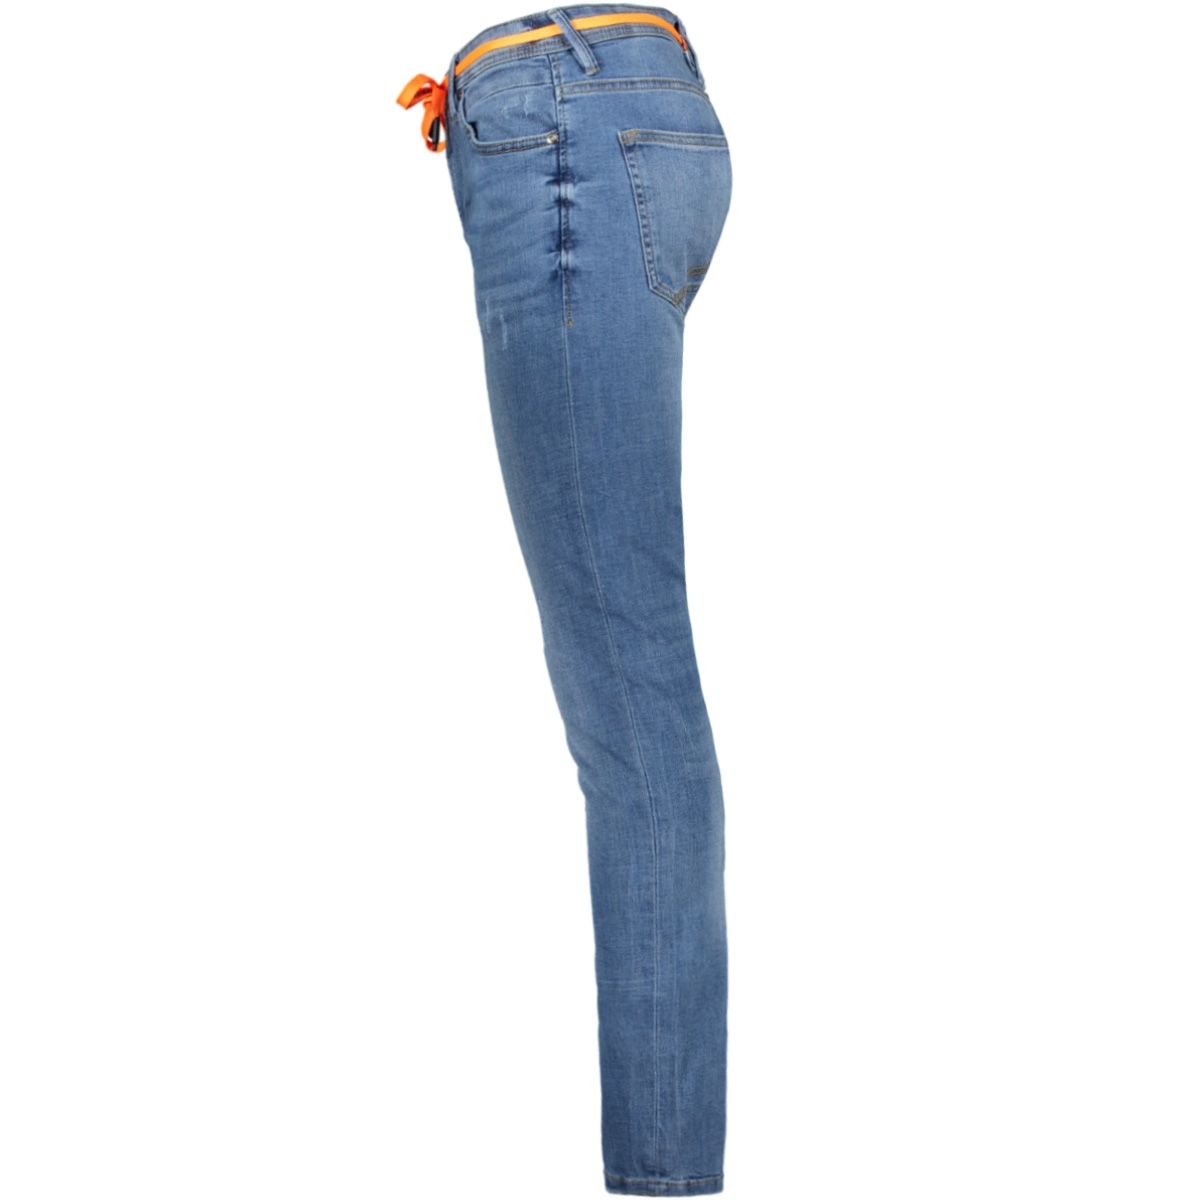 piers slim jeans 1020052xx12 tom tailor jeans 10118